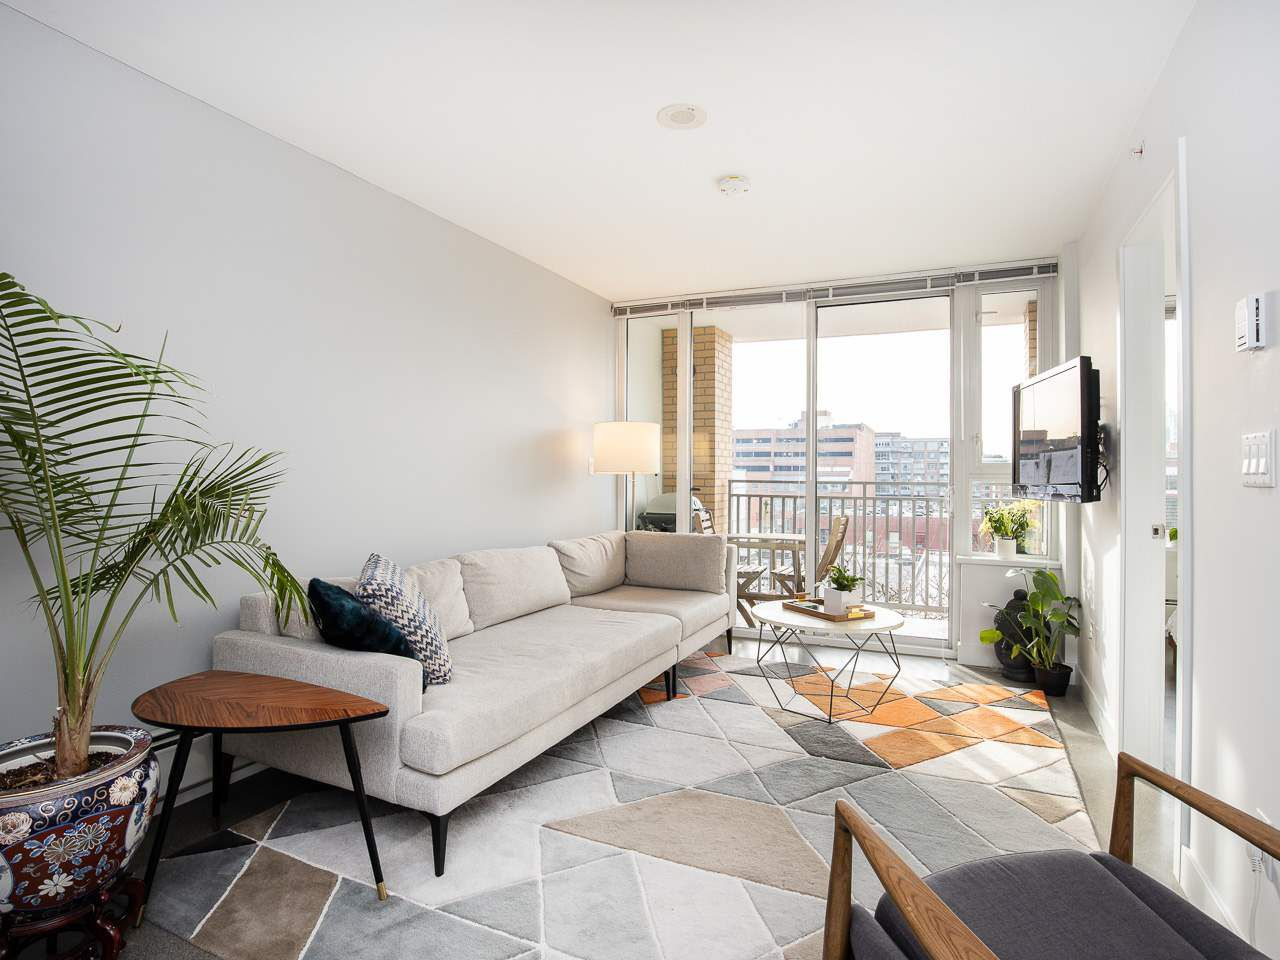 """Main Photo: 603 231 E PENDER Street in Vancouver: Mount Pleasant VE Condo for sale in """"Framework"""" (Vancouver East)  : MLS®# R2340301"""